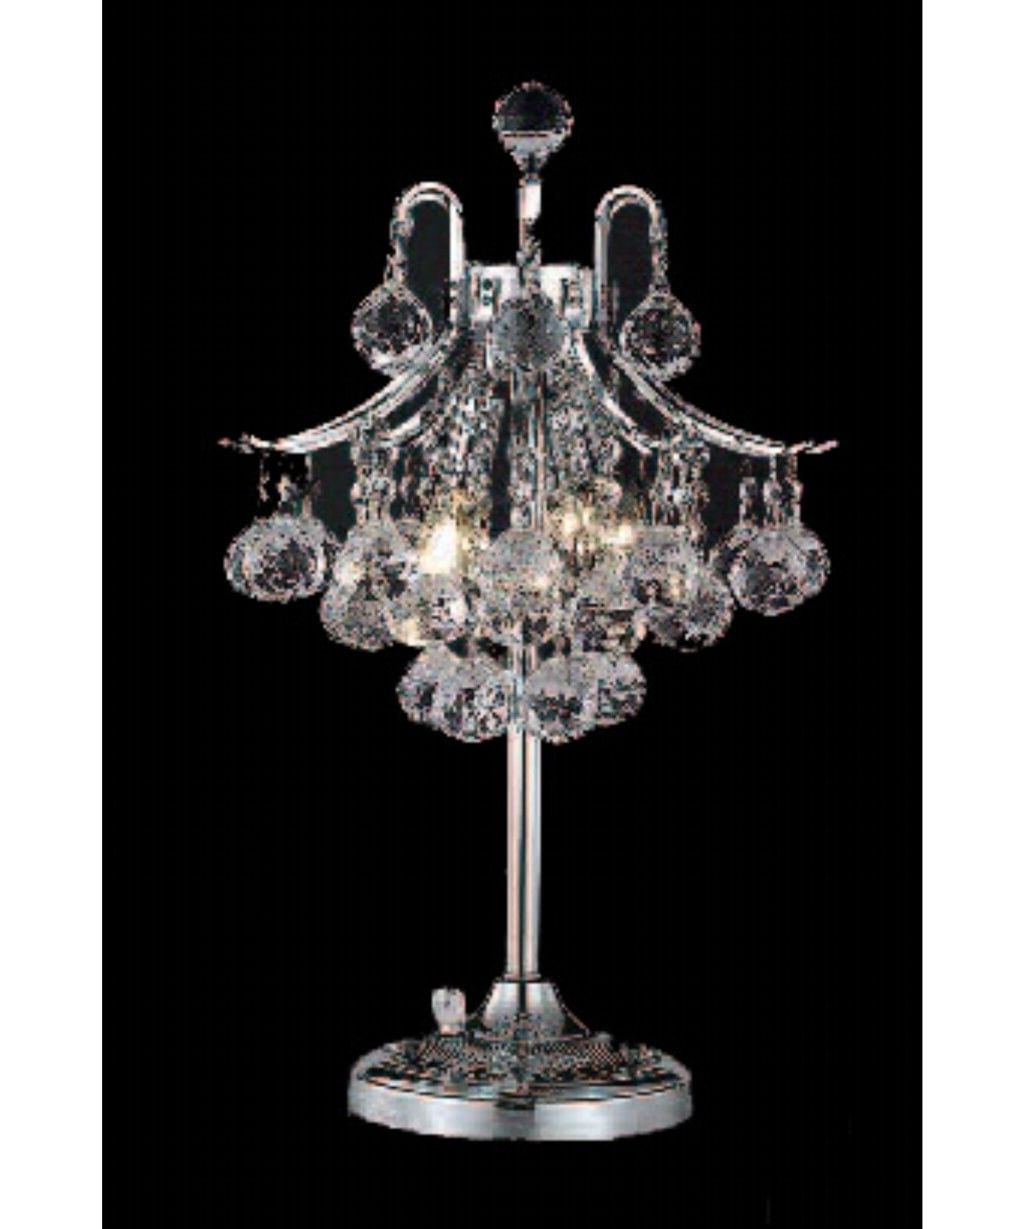 Well Known Lighting: Spectacular Mini Chandelier Table Lamp For Modern Living With Regard To Crystal Table Chandeliers (View 14 of 15)